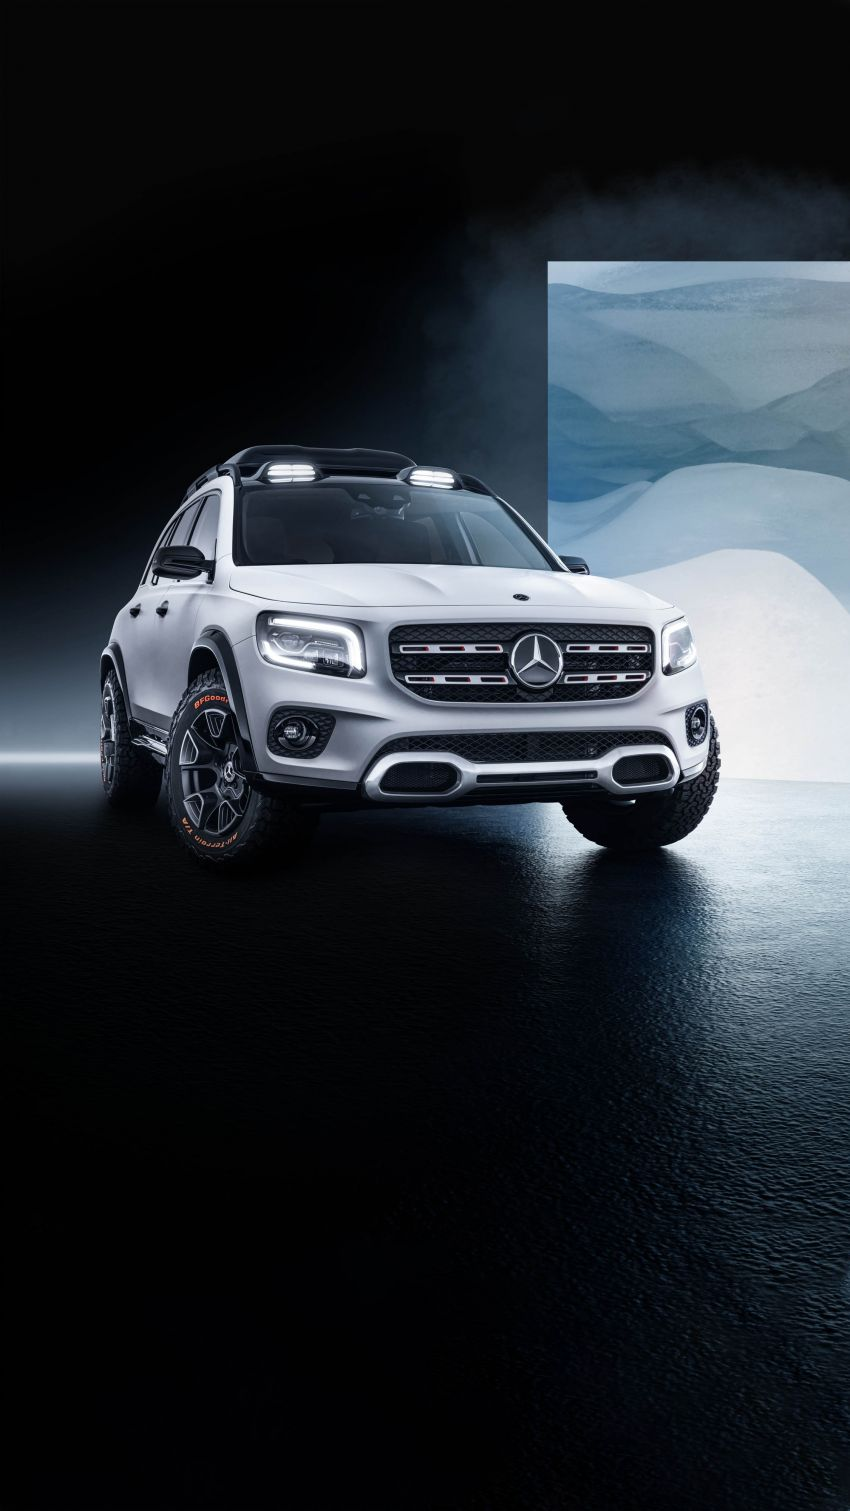 Mercedes-Benz Concept GLB unveiled in Shanghai Image #948027